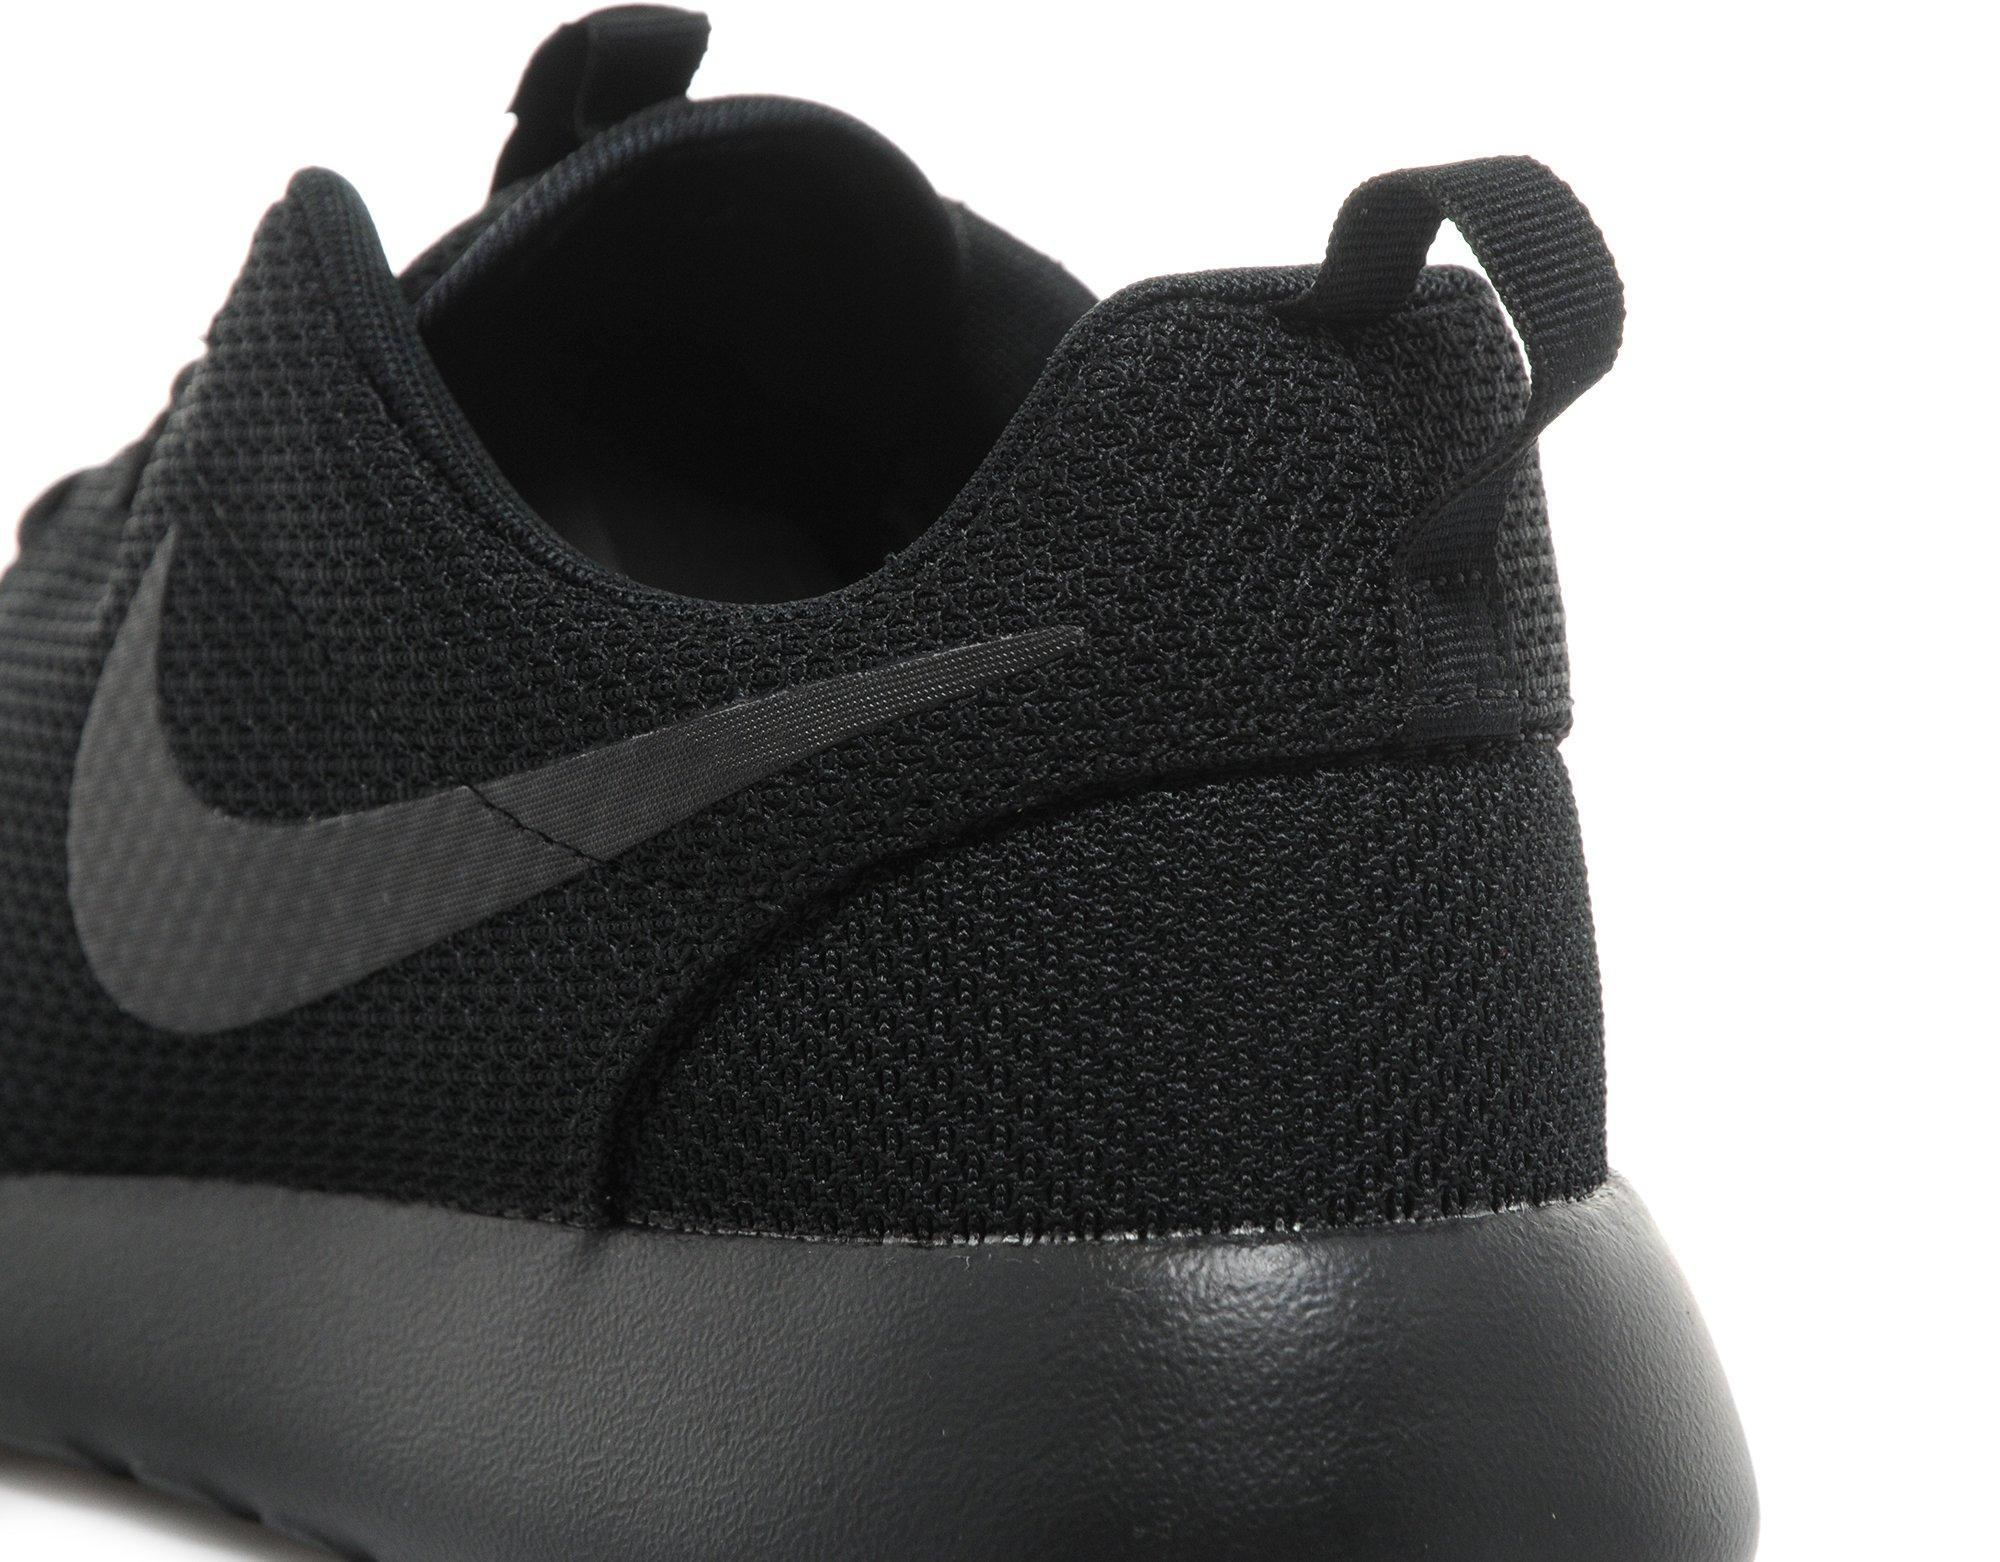 9f9000eb49 nike roshe one jd sports exclusive cool material; gallery. previously sold  at jd sports mens nike roshe